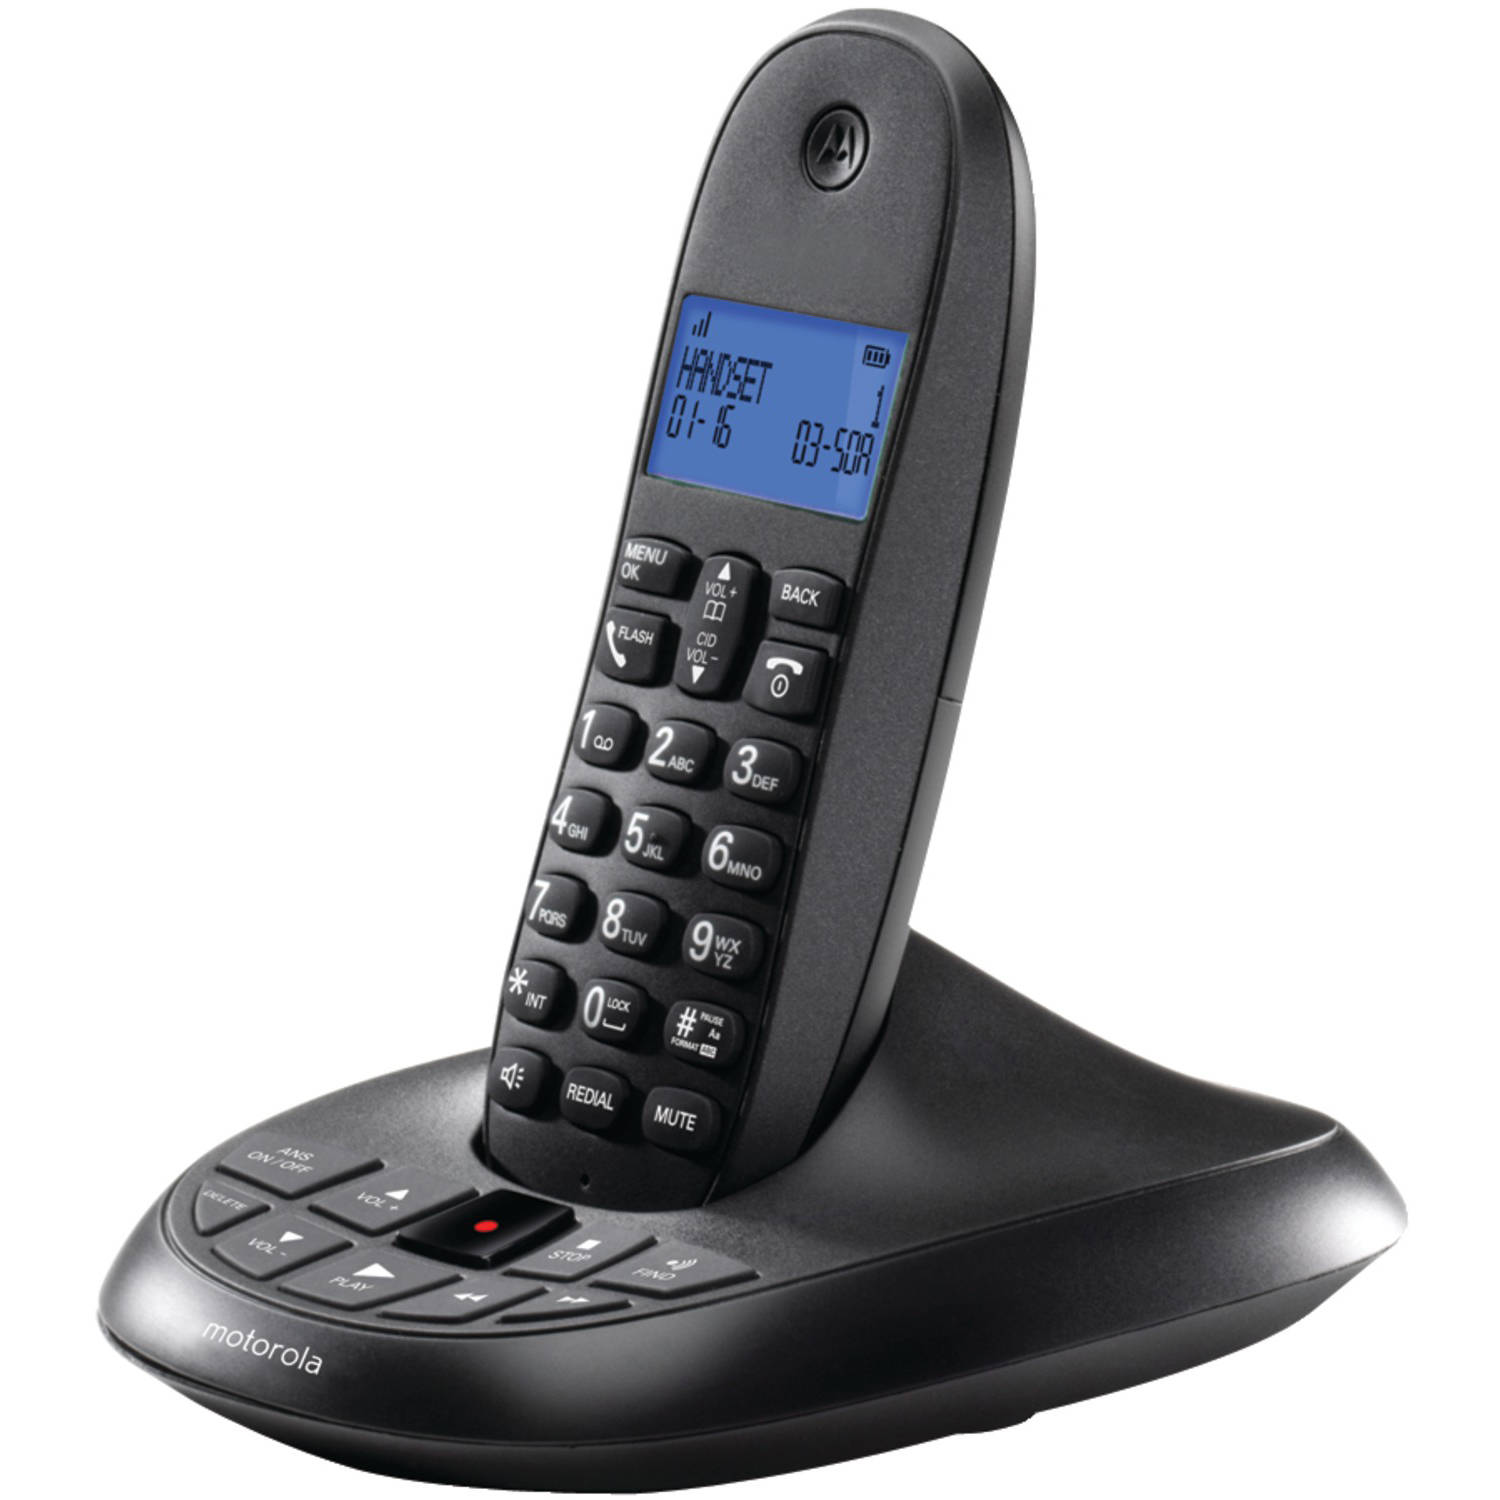 Motorola C1011LX Dect 6.0 Cordless Phone System with Caller ID and Answering System, 1-Handset System